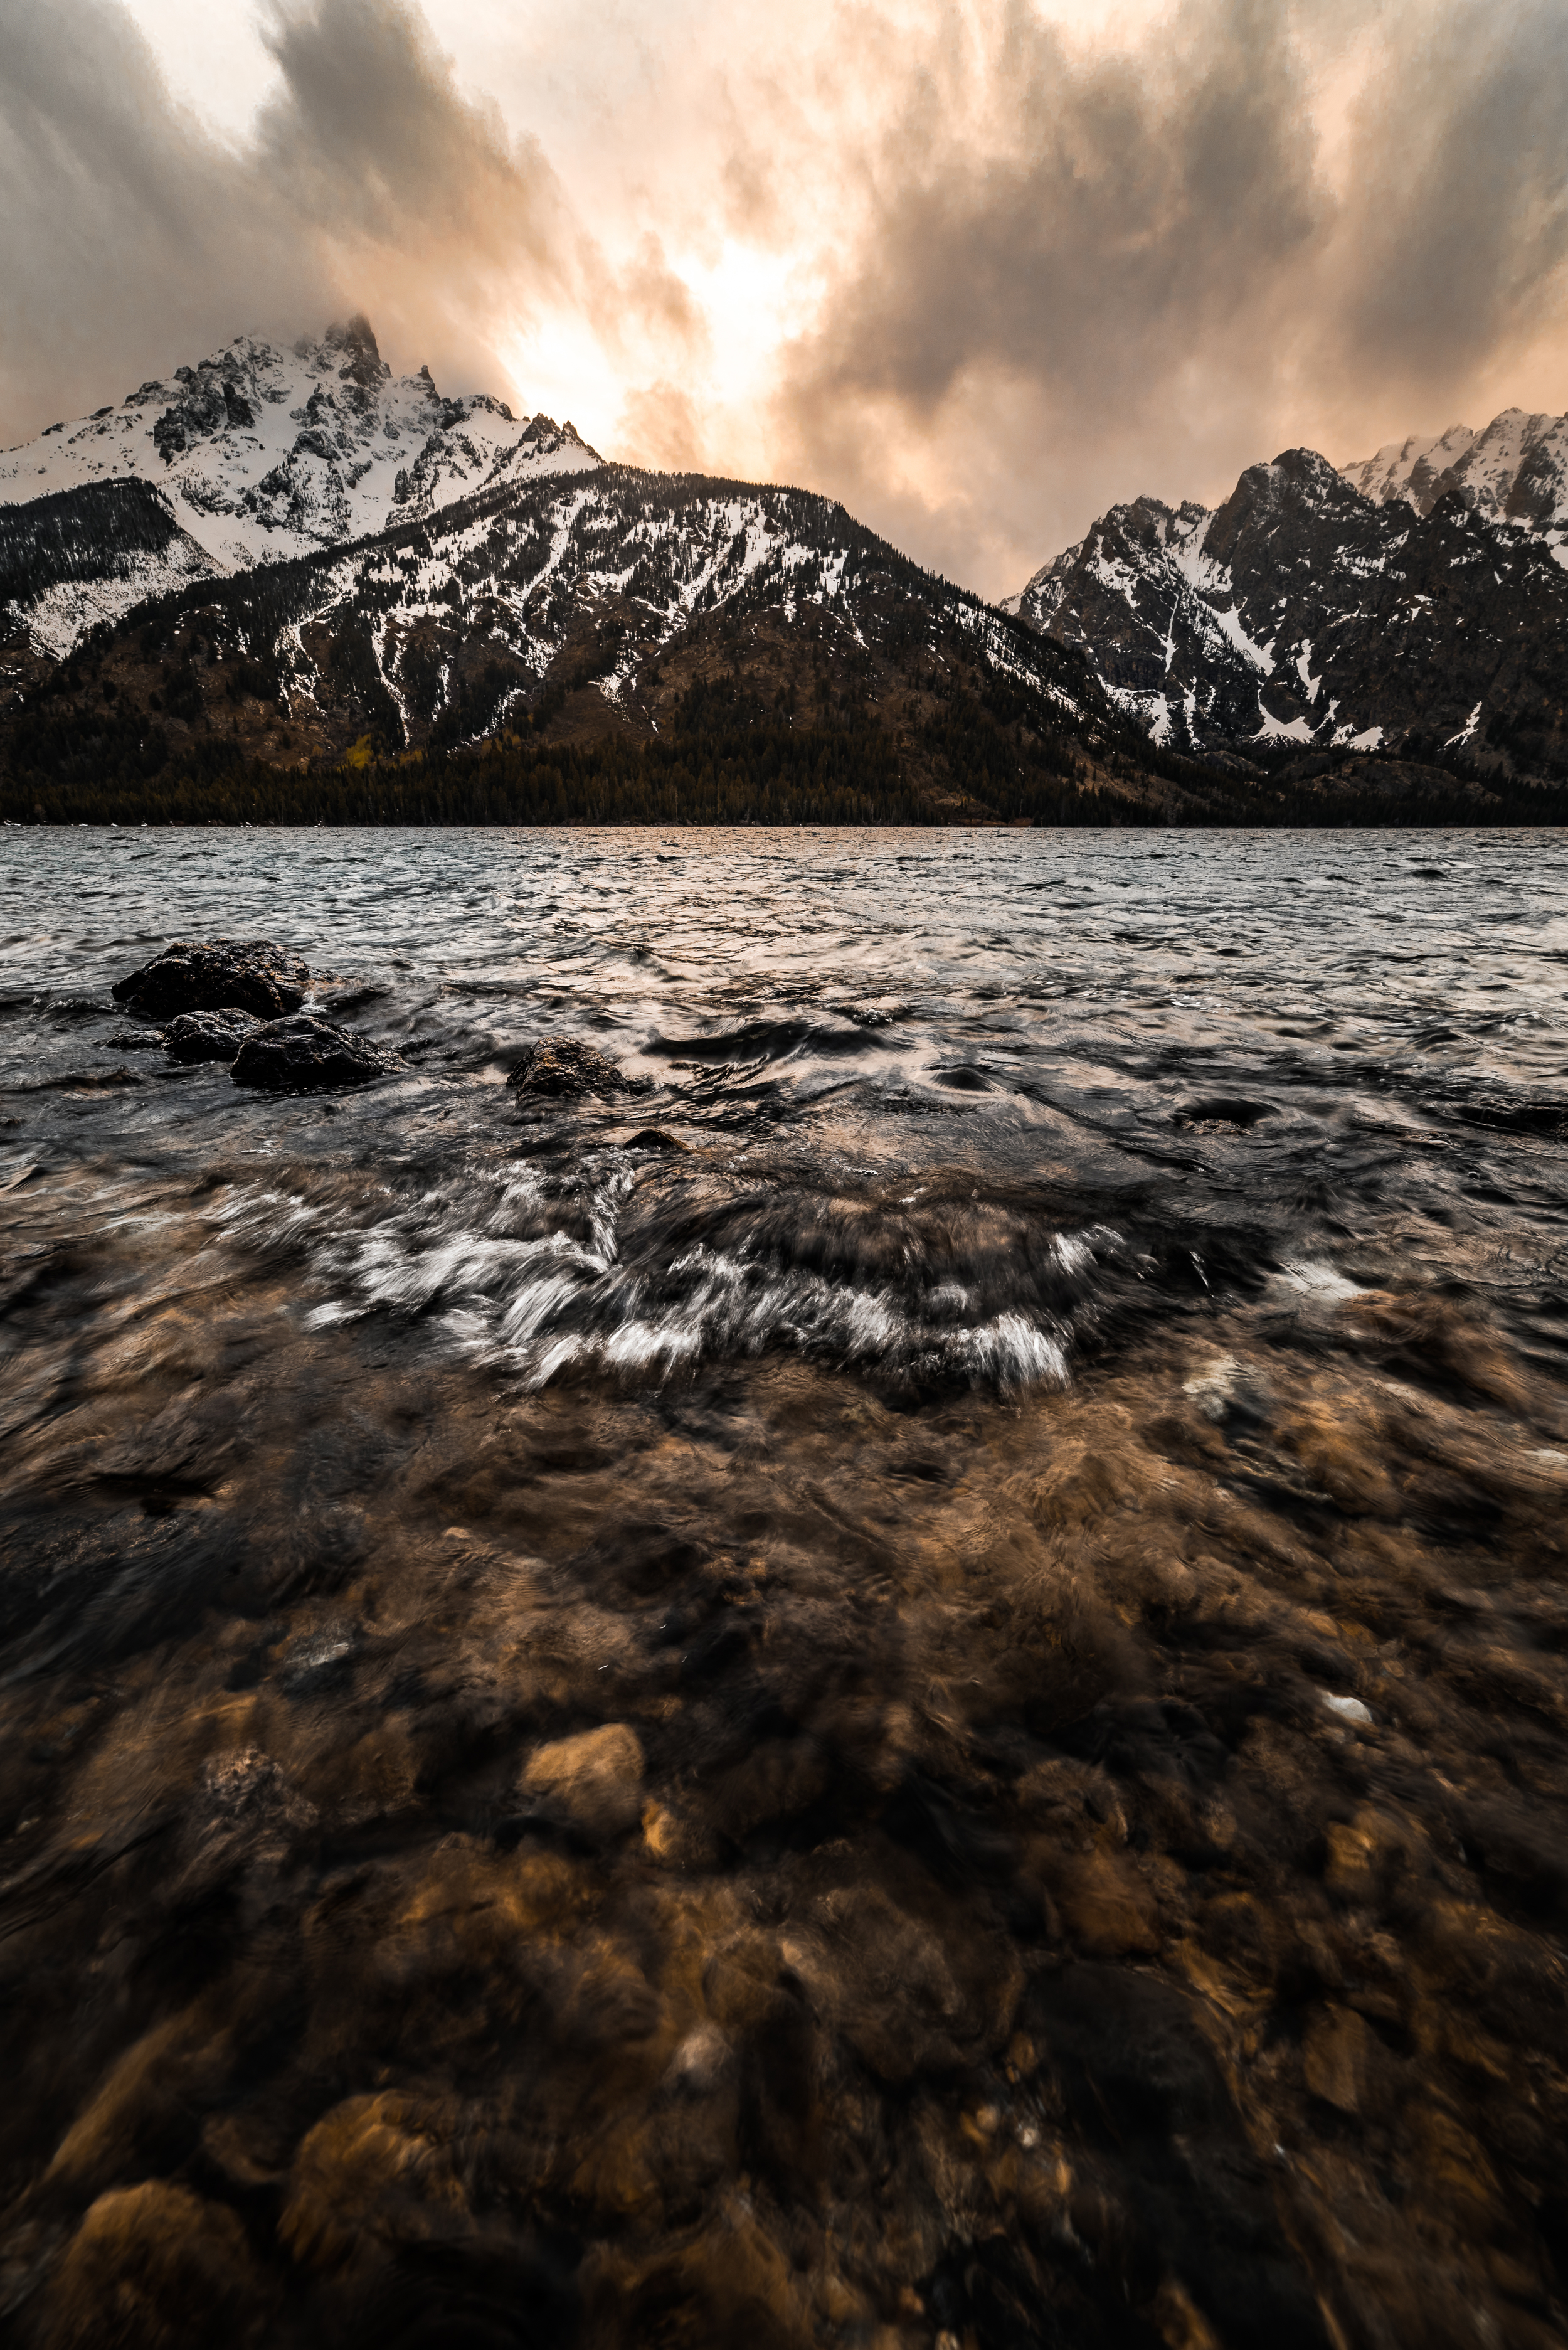 Sunset behind the Tetons at Jenny Lake creating glowing clouds in 'Glowing Tetons""